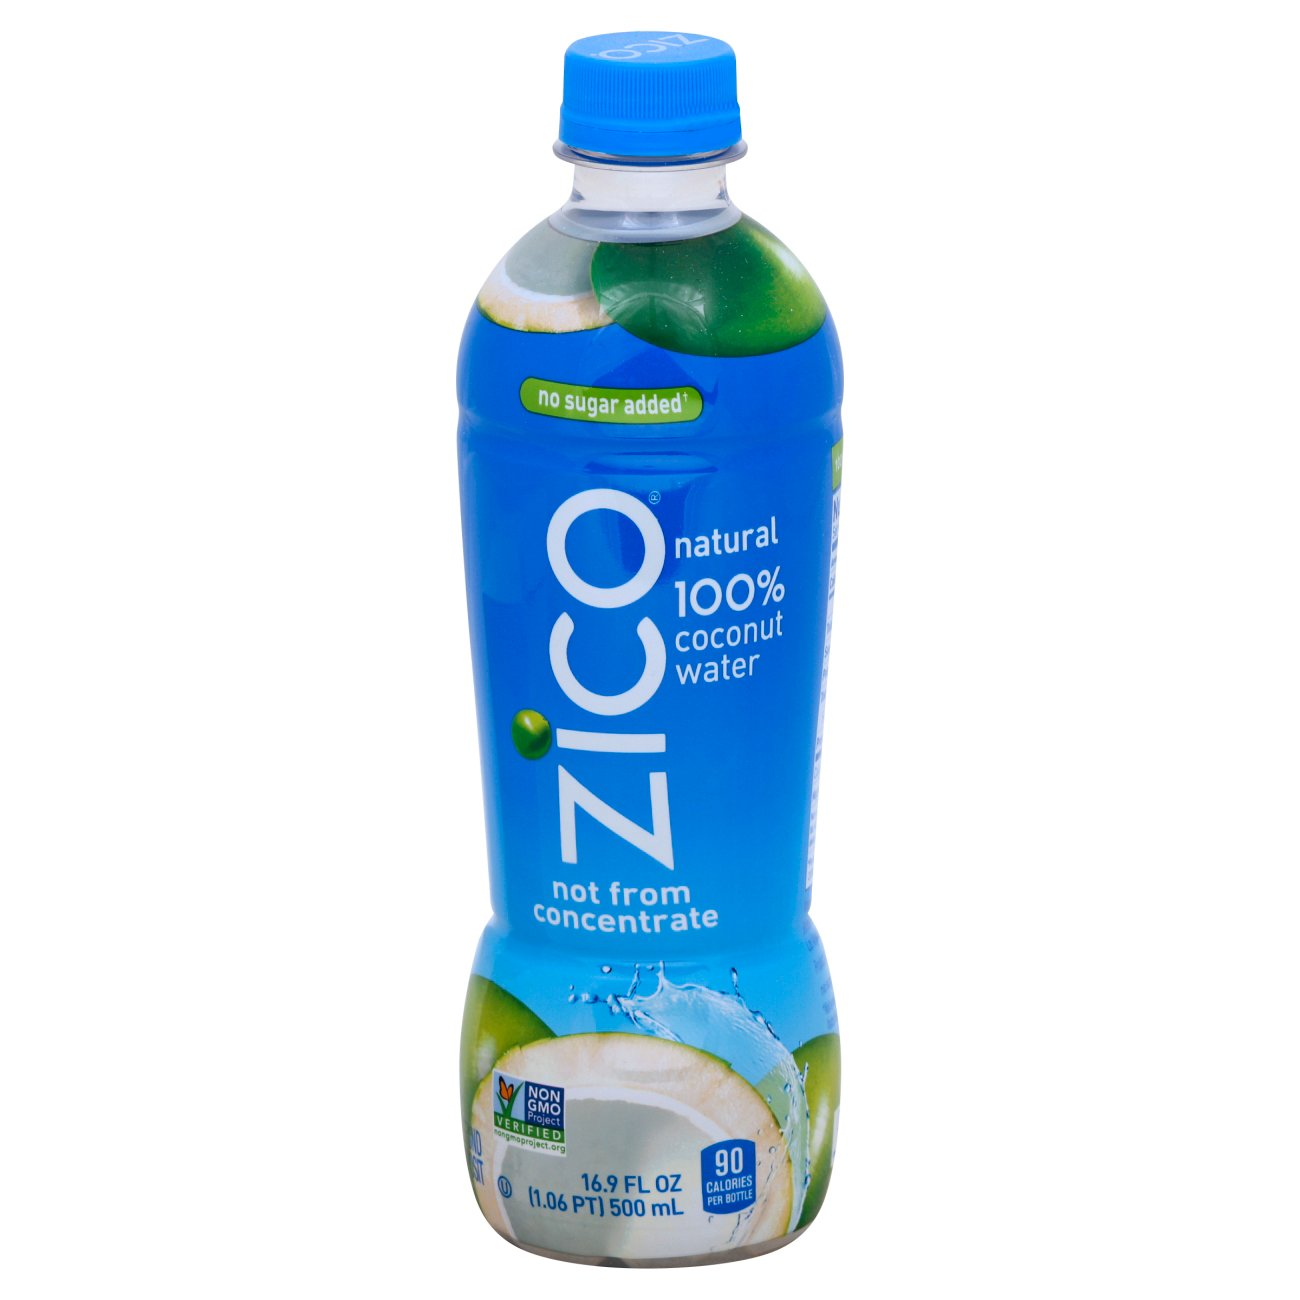 Zico Natural Coconut Water Shop Coconut Water At H E B